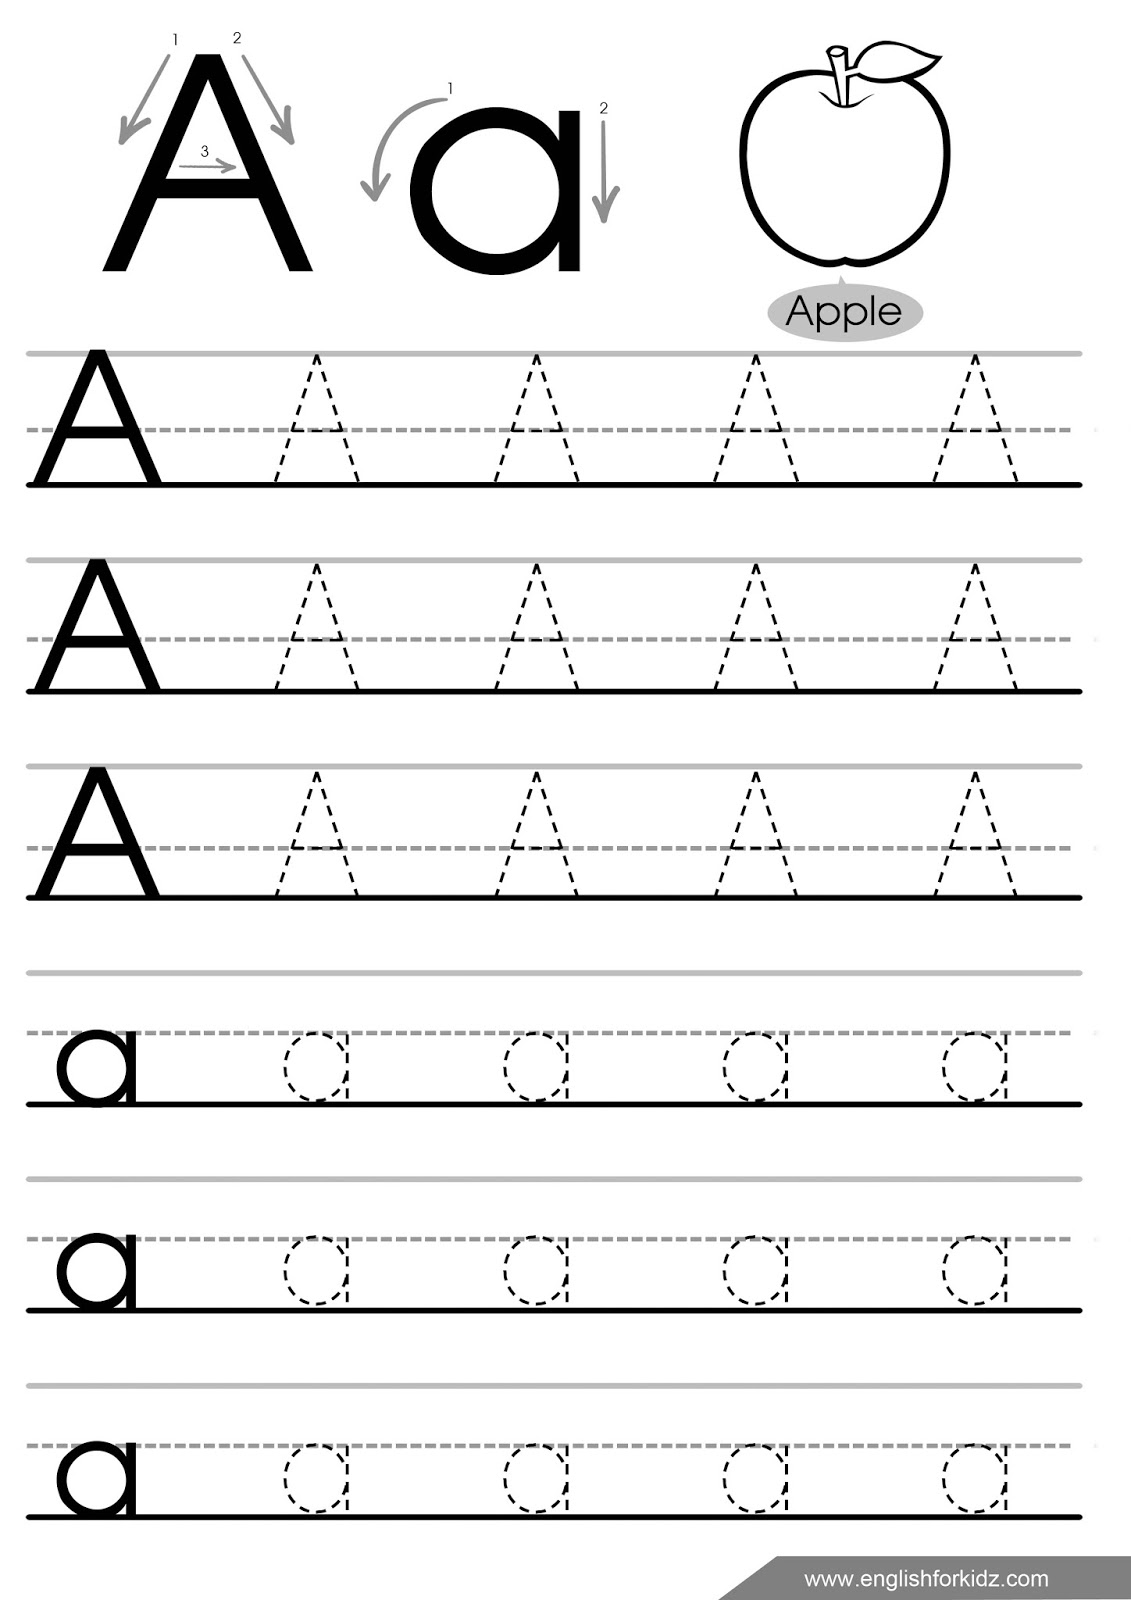 FREE Printable Letter W Tracing Worksheet With Number and Arrow ...